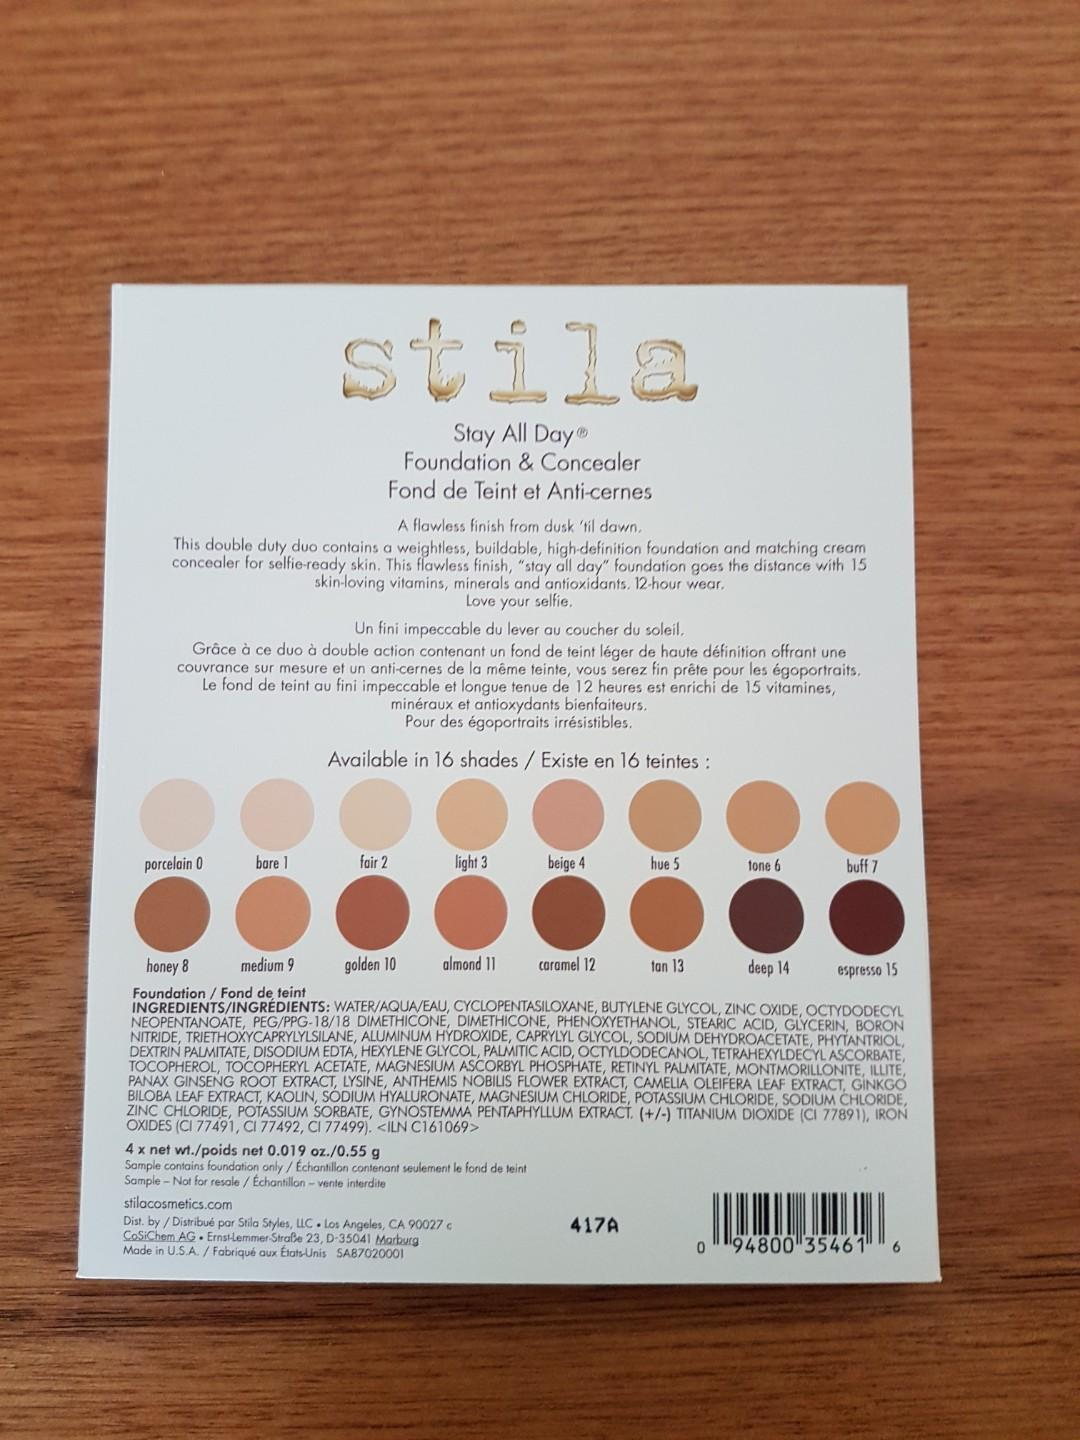 Stila stay all day foundation and concealer sample *free shipping*